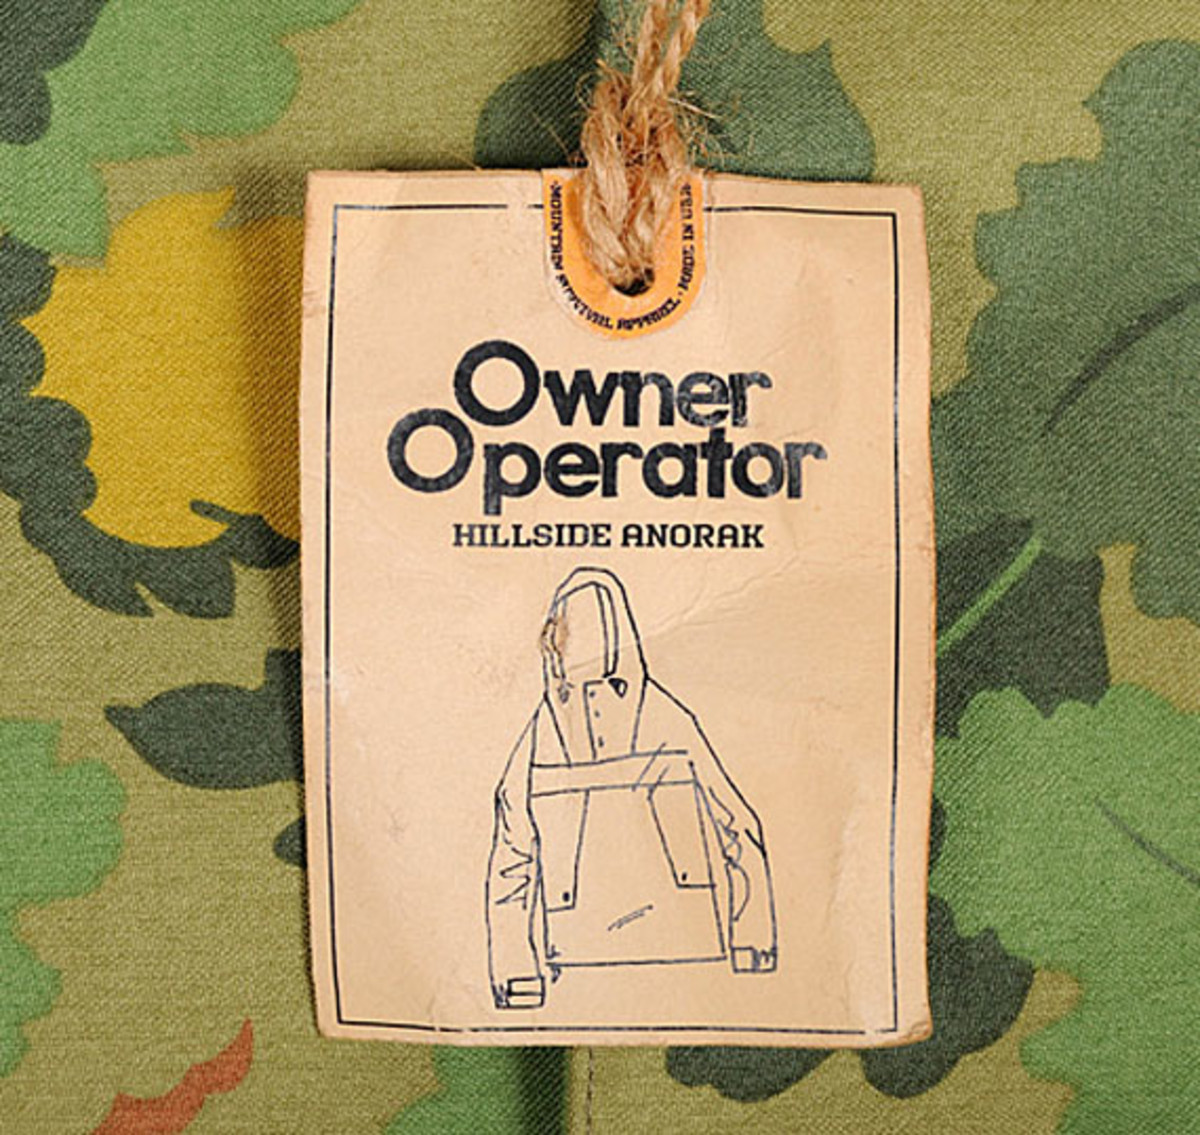 the-hill-side-owner-operator-leaf-camo-chino-pack-anorak-19